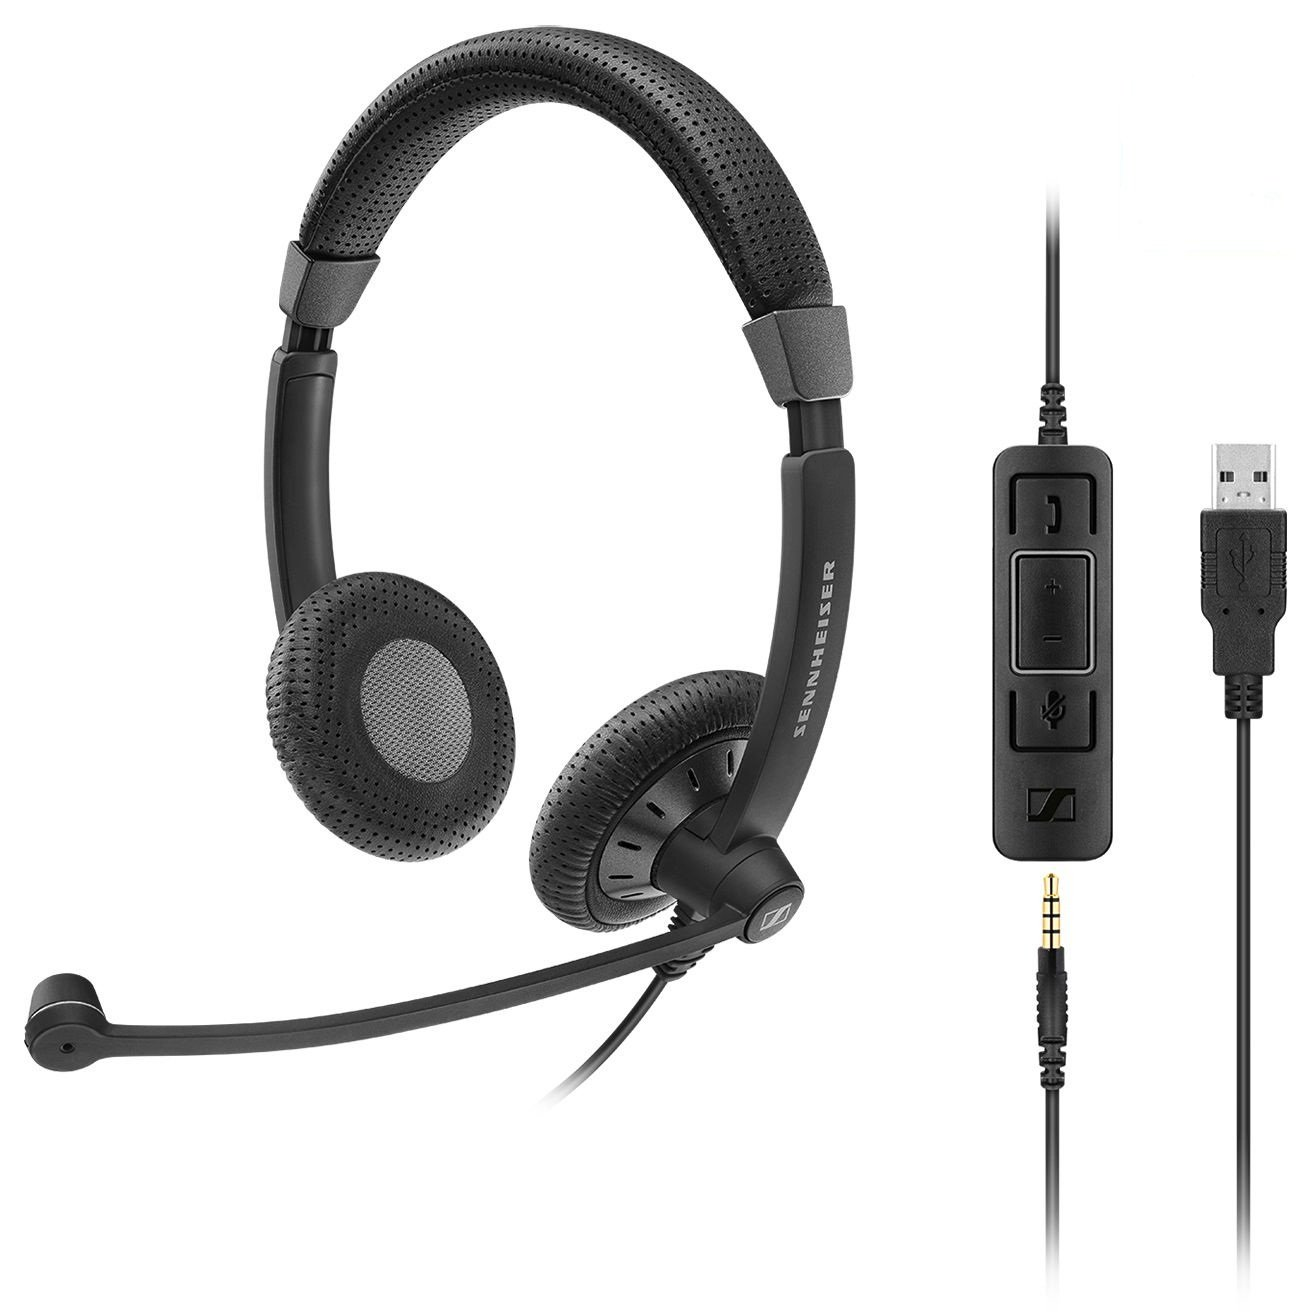 Sennheiser SC 75 USB MS Culture Plus Mobile , Double-sided, Wired Headset with both 3.5 mm Jack and USB connectivity Skype for Business Certified Sennheiser Enterprise Solutions 615104277403